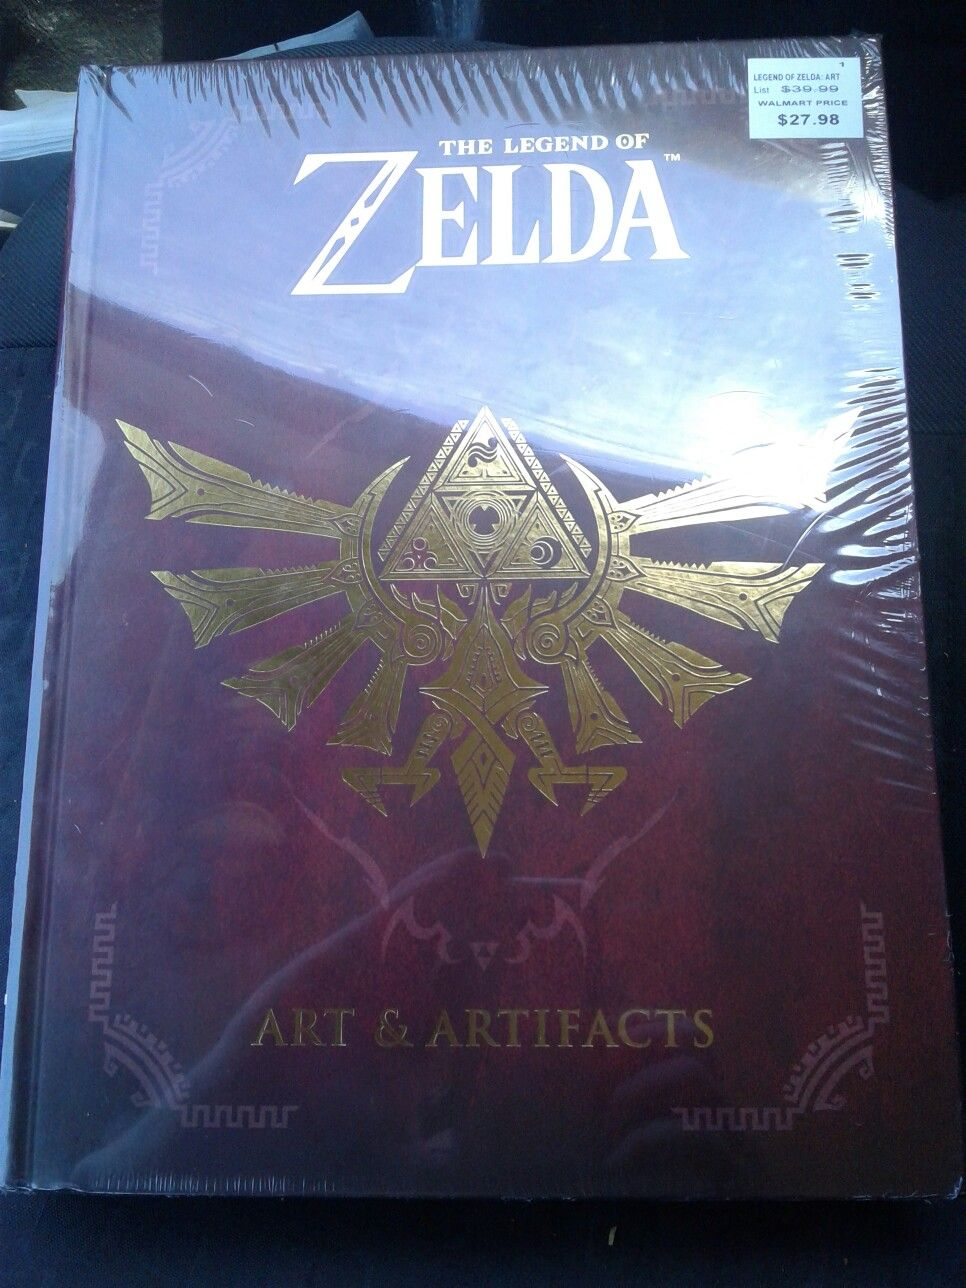 Huge zelda fan and just bought this legend of zelda art